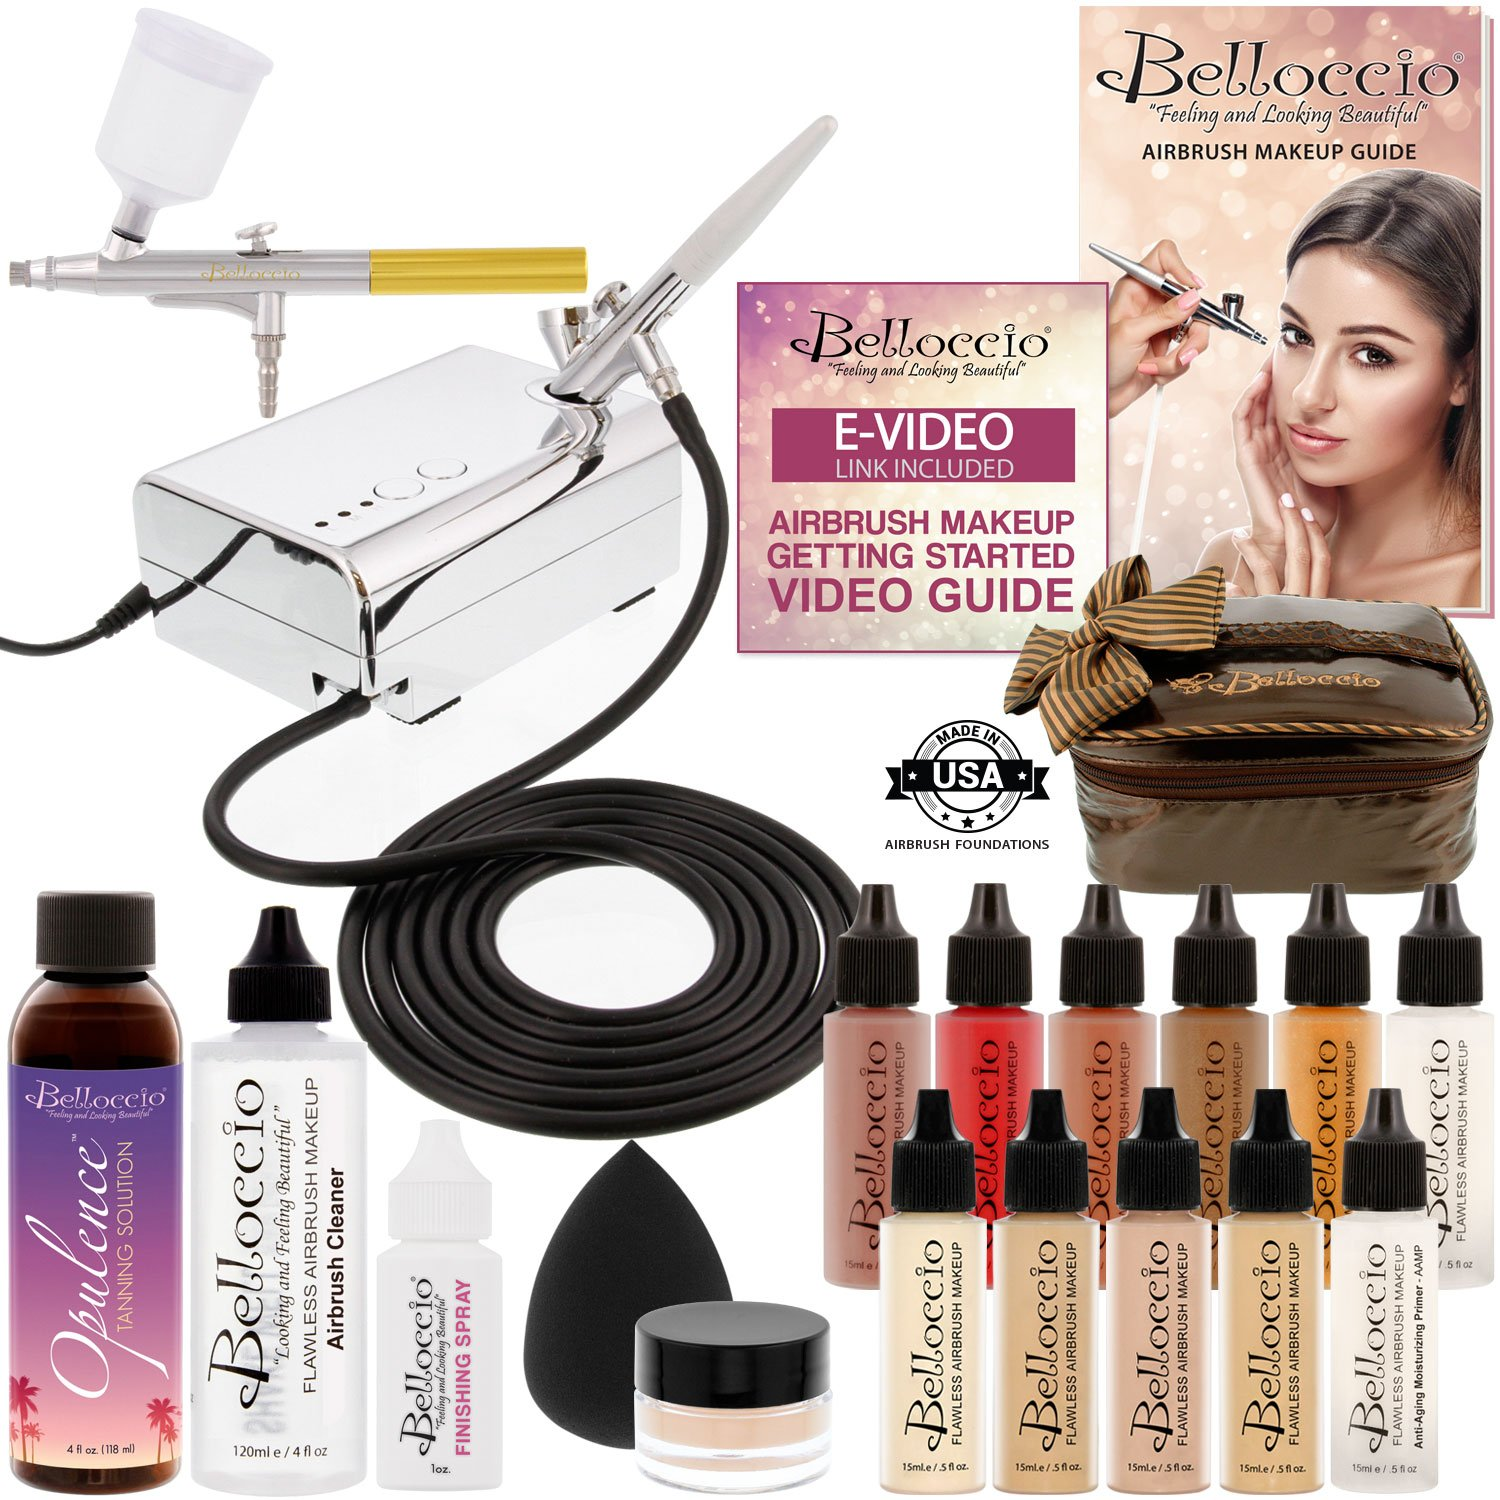 Belloccio Makeup and Tanning Airbrush System with FAIR Foundation and Blush Set